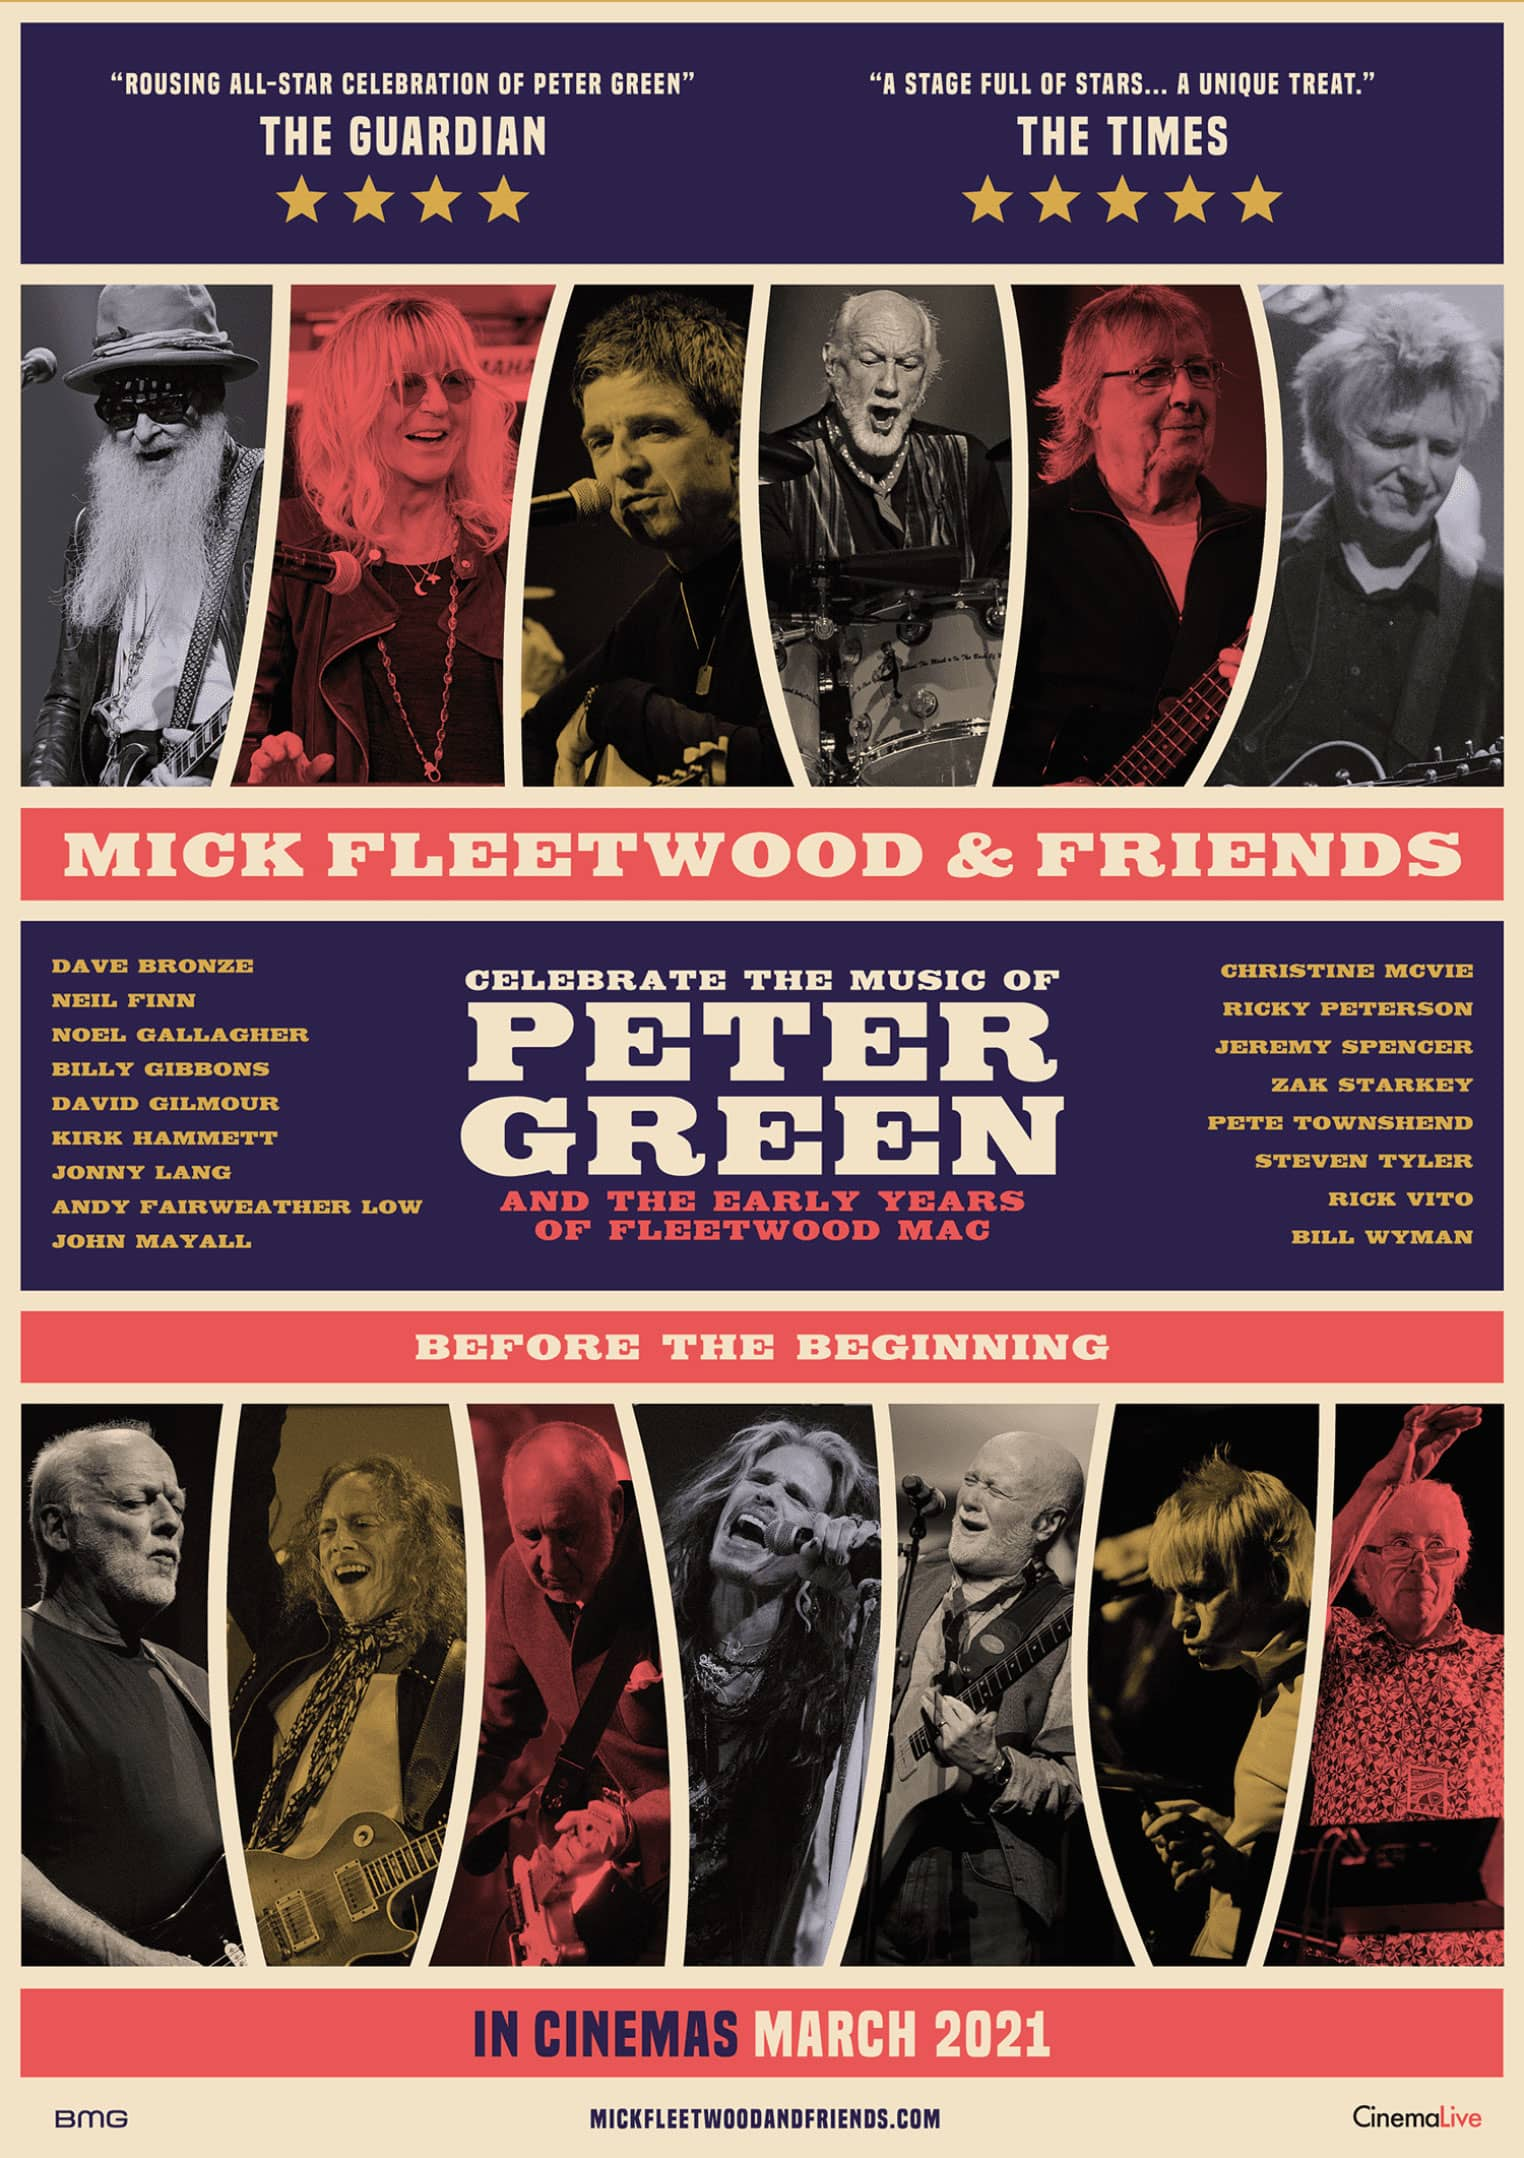 Mick-Fleetwood-and-Friends-Celebrate-The-Music-Of-Peter-Green-And-The-Early-Years-Of-Fleetwood-Mac